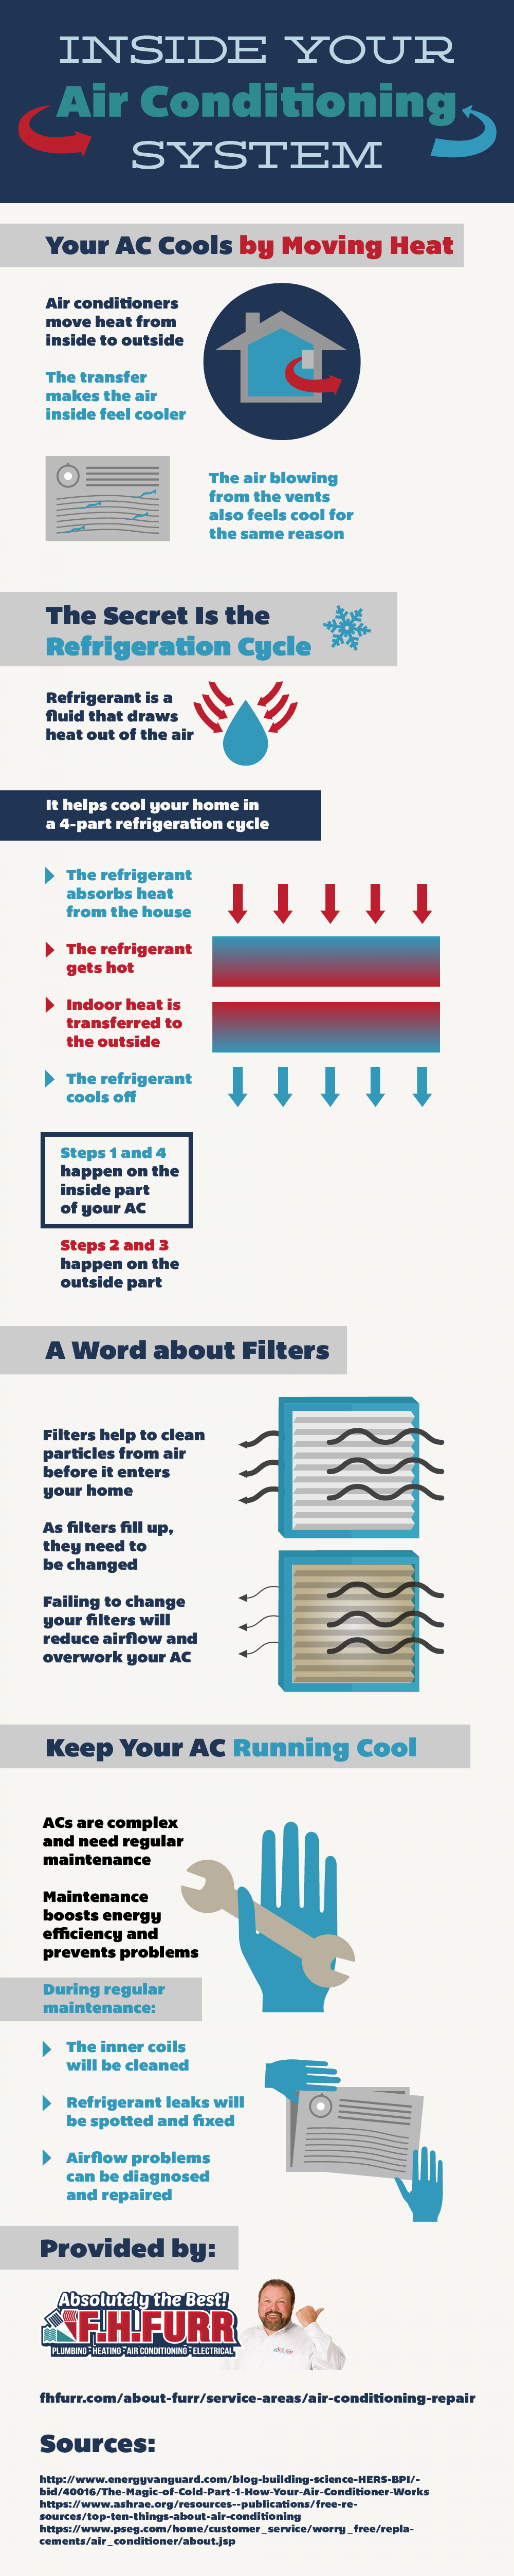 Inside Your Air Conditioning System Infographic